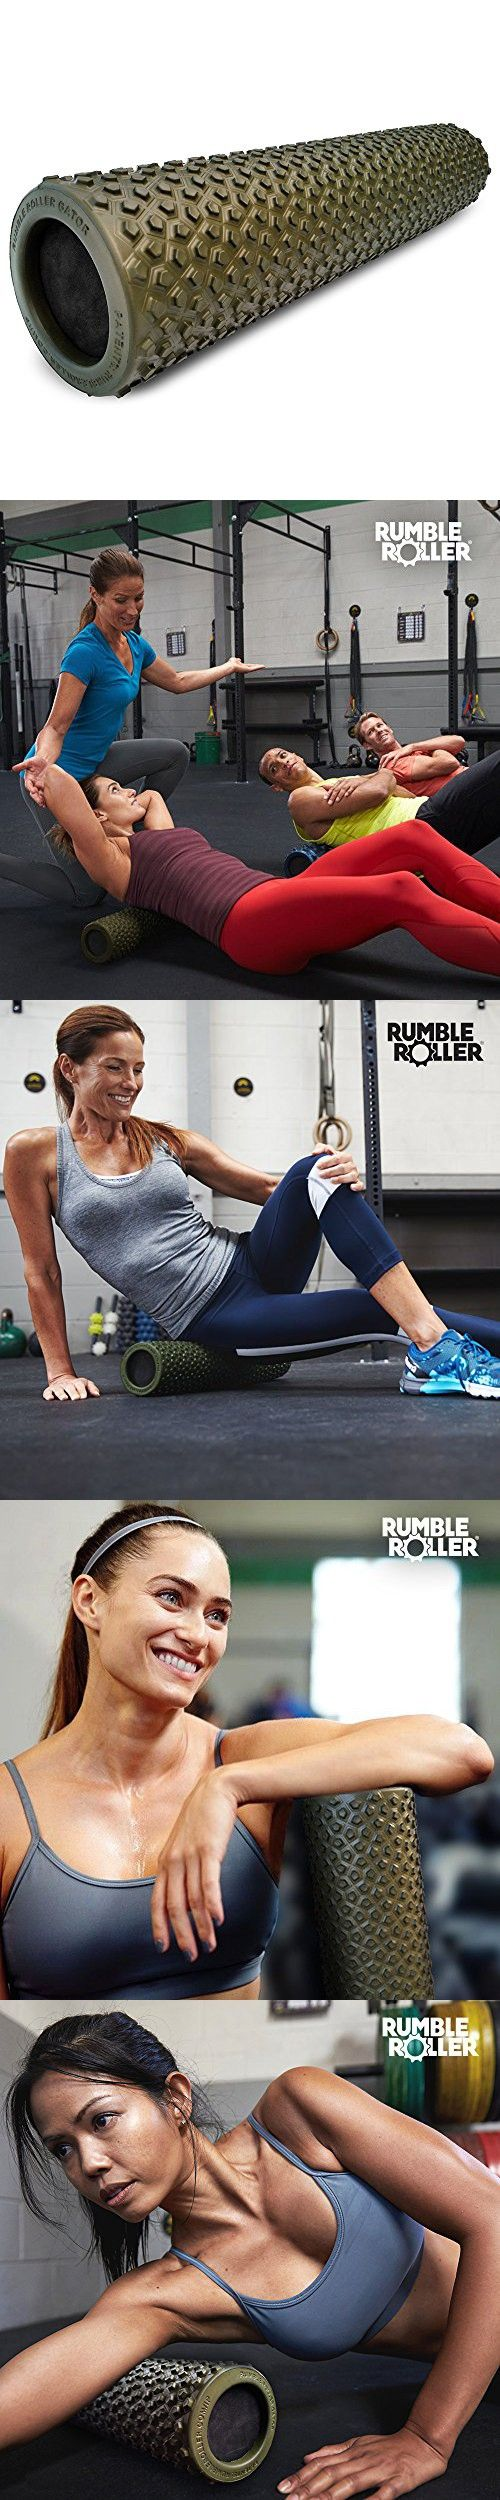 """RumbleRoller Gator - 22"""" Foam Roller - Foam Muscle Roller Optimized For Cross Frictional Massage – Patent Pending Back Roller- Reduces Sore Muscles   Relieve Back Muscle Pain"""